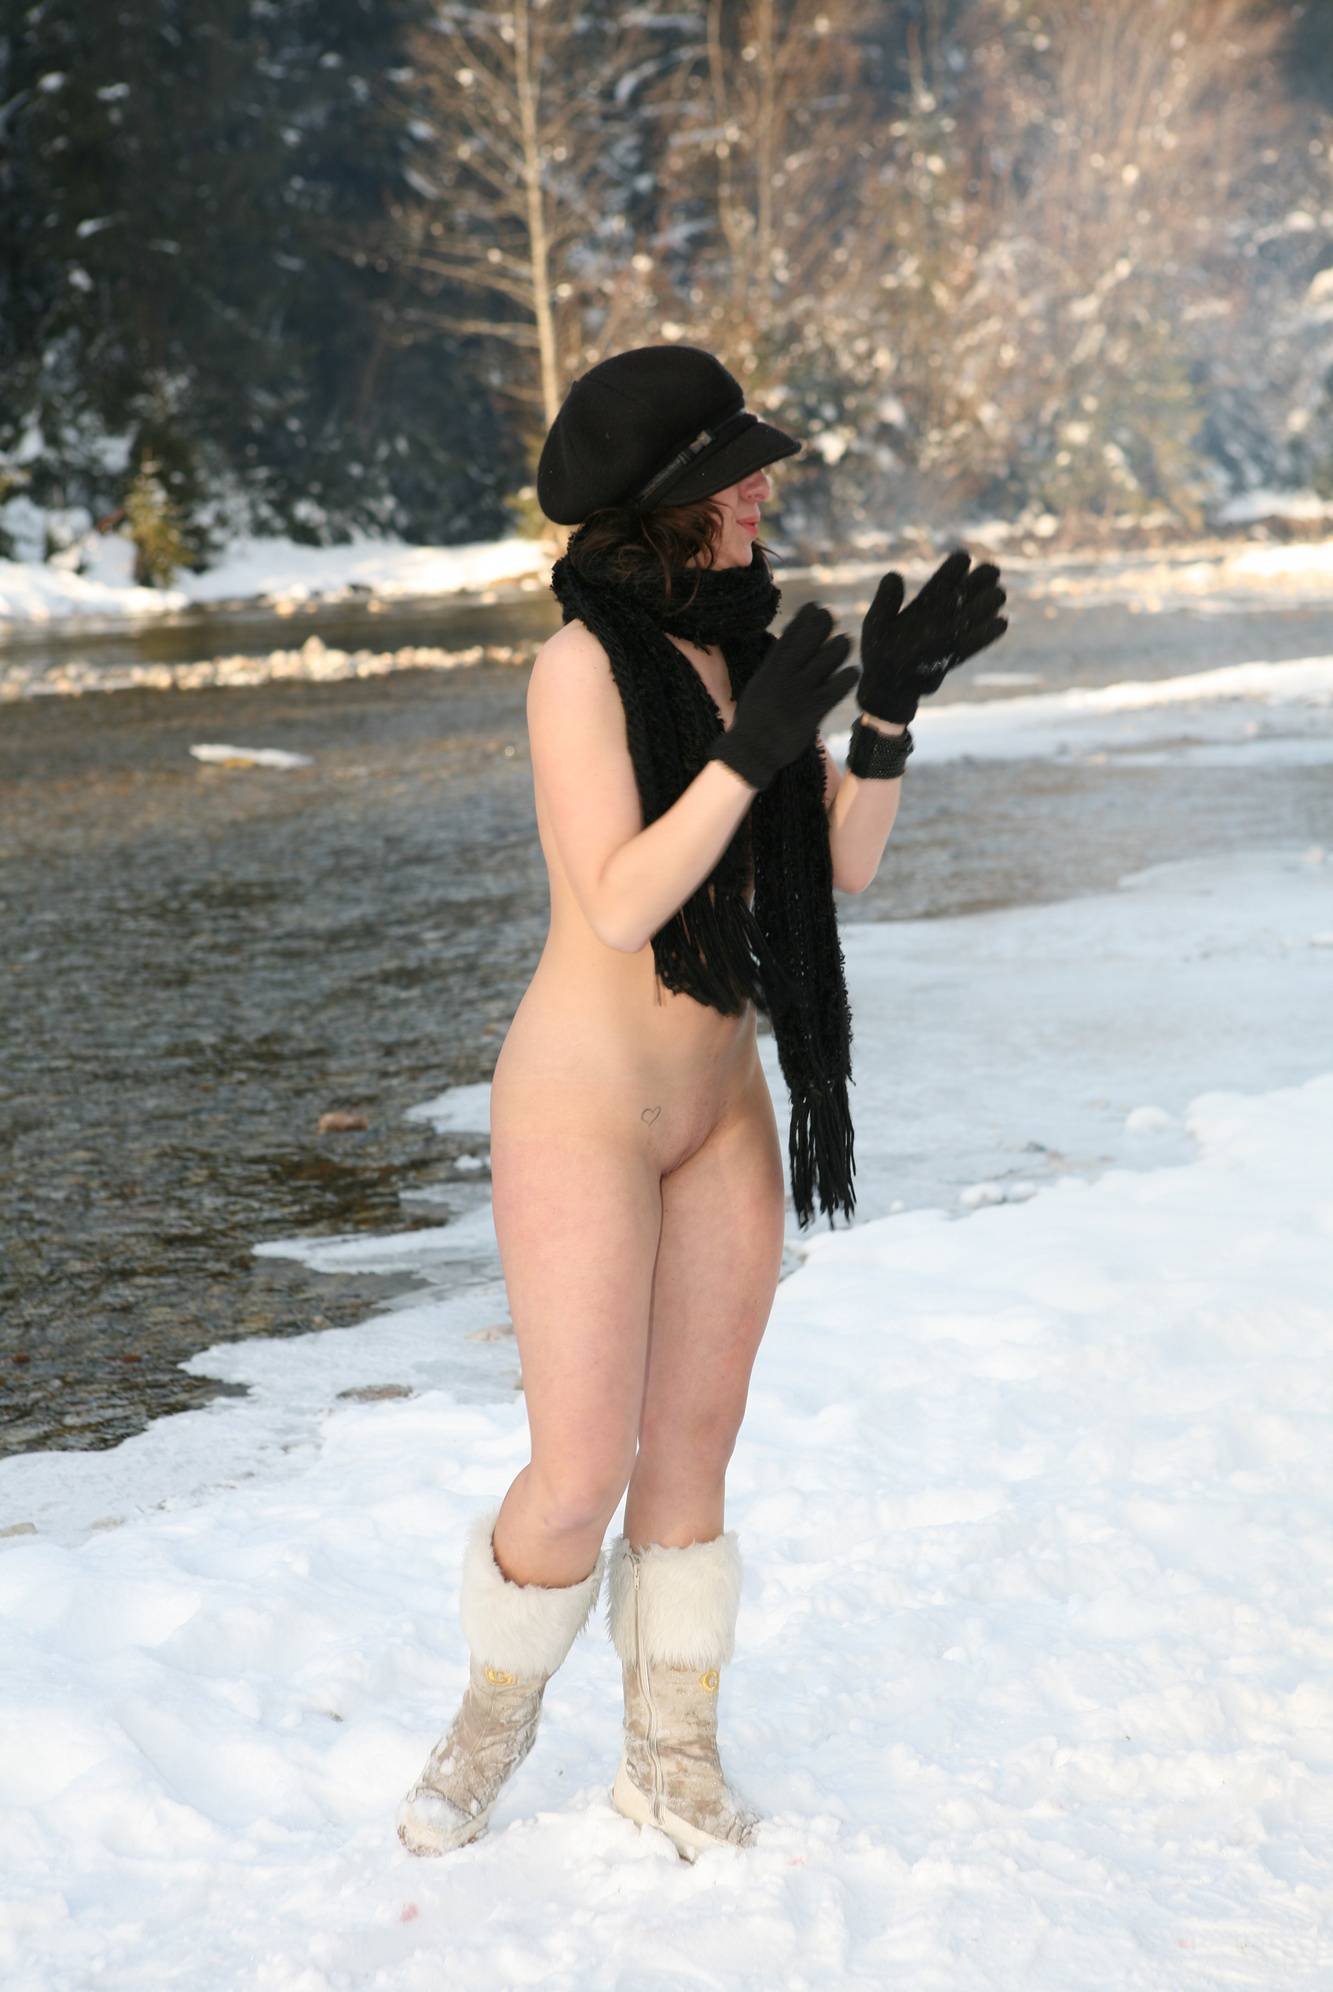 Nudist Pictures Snow Day Winter Session - 1